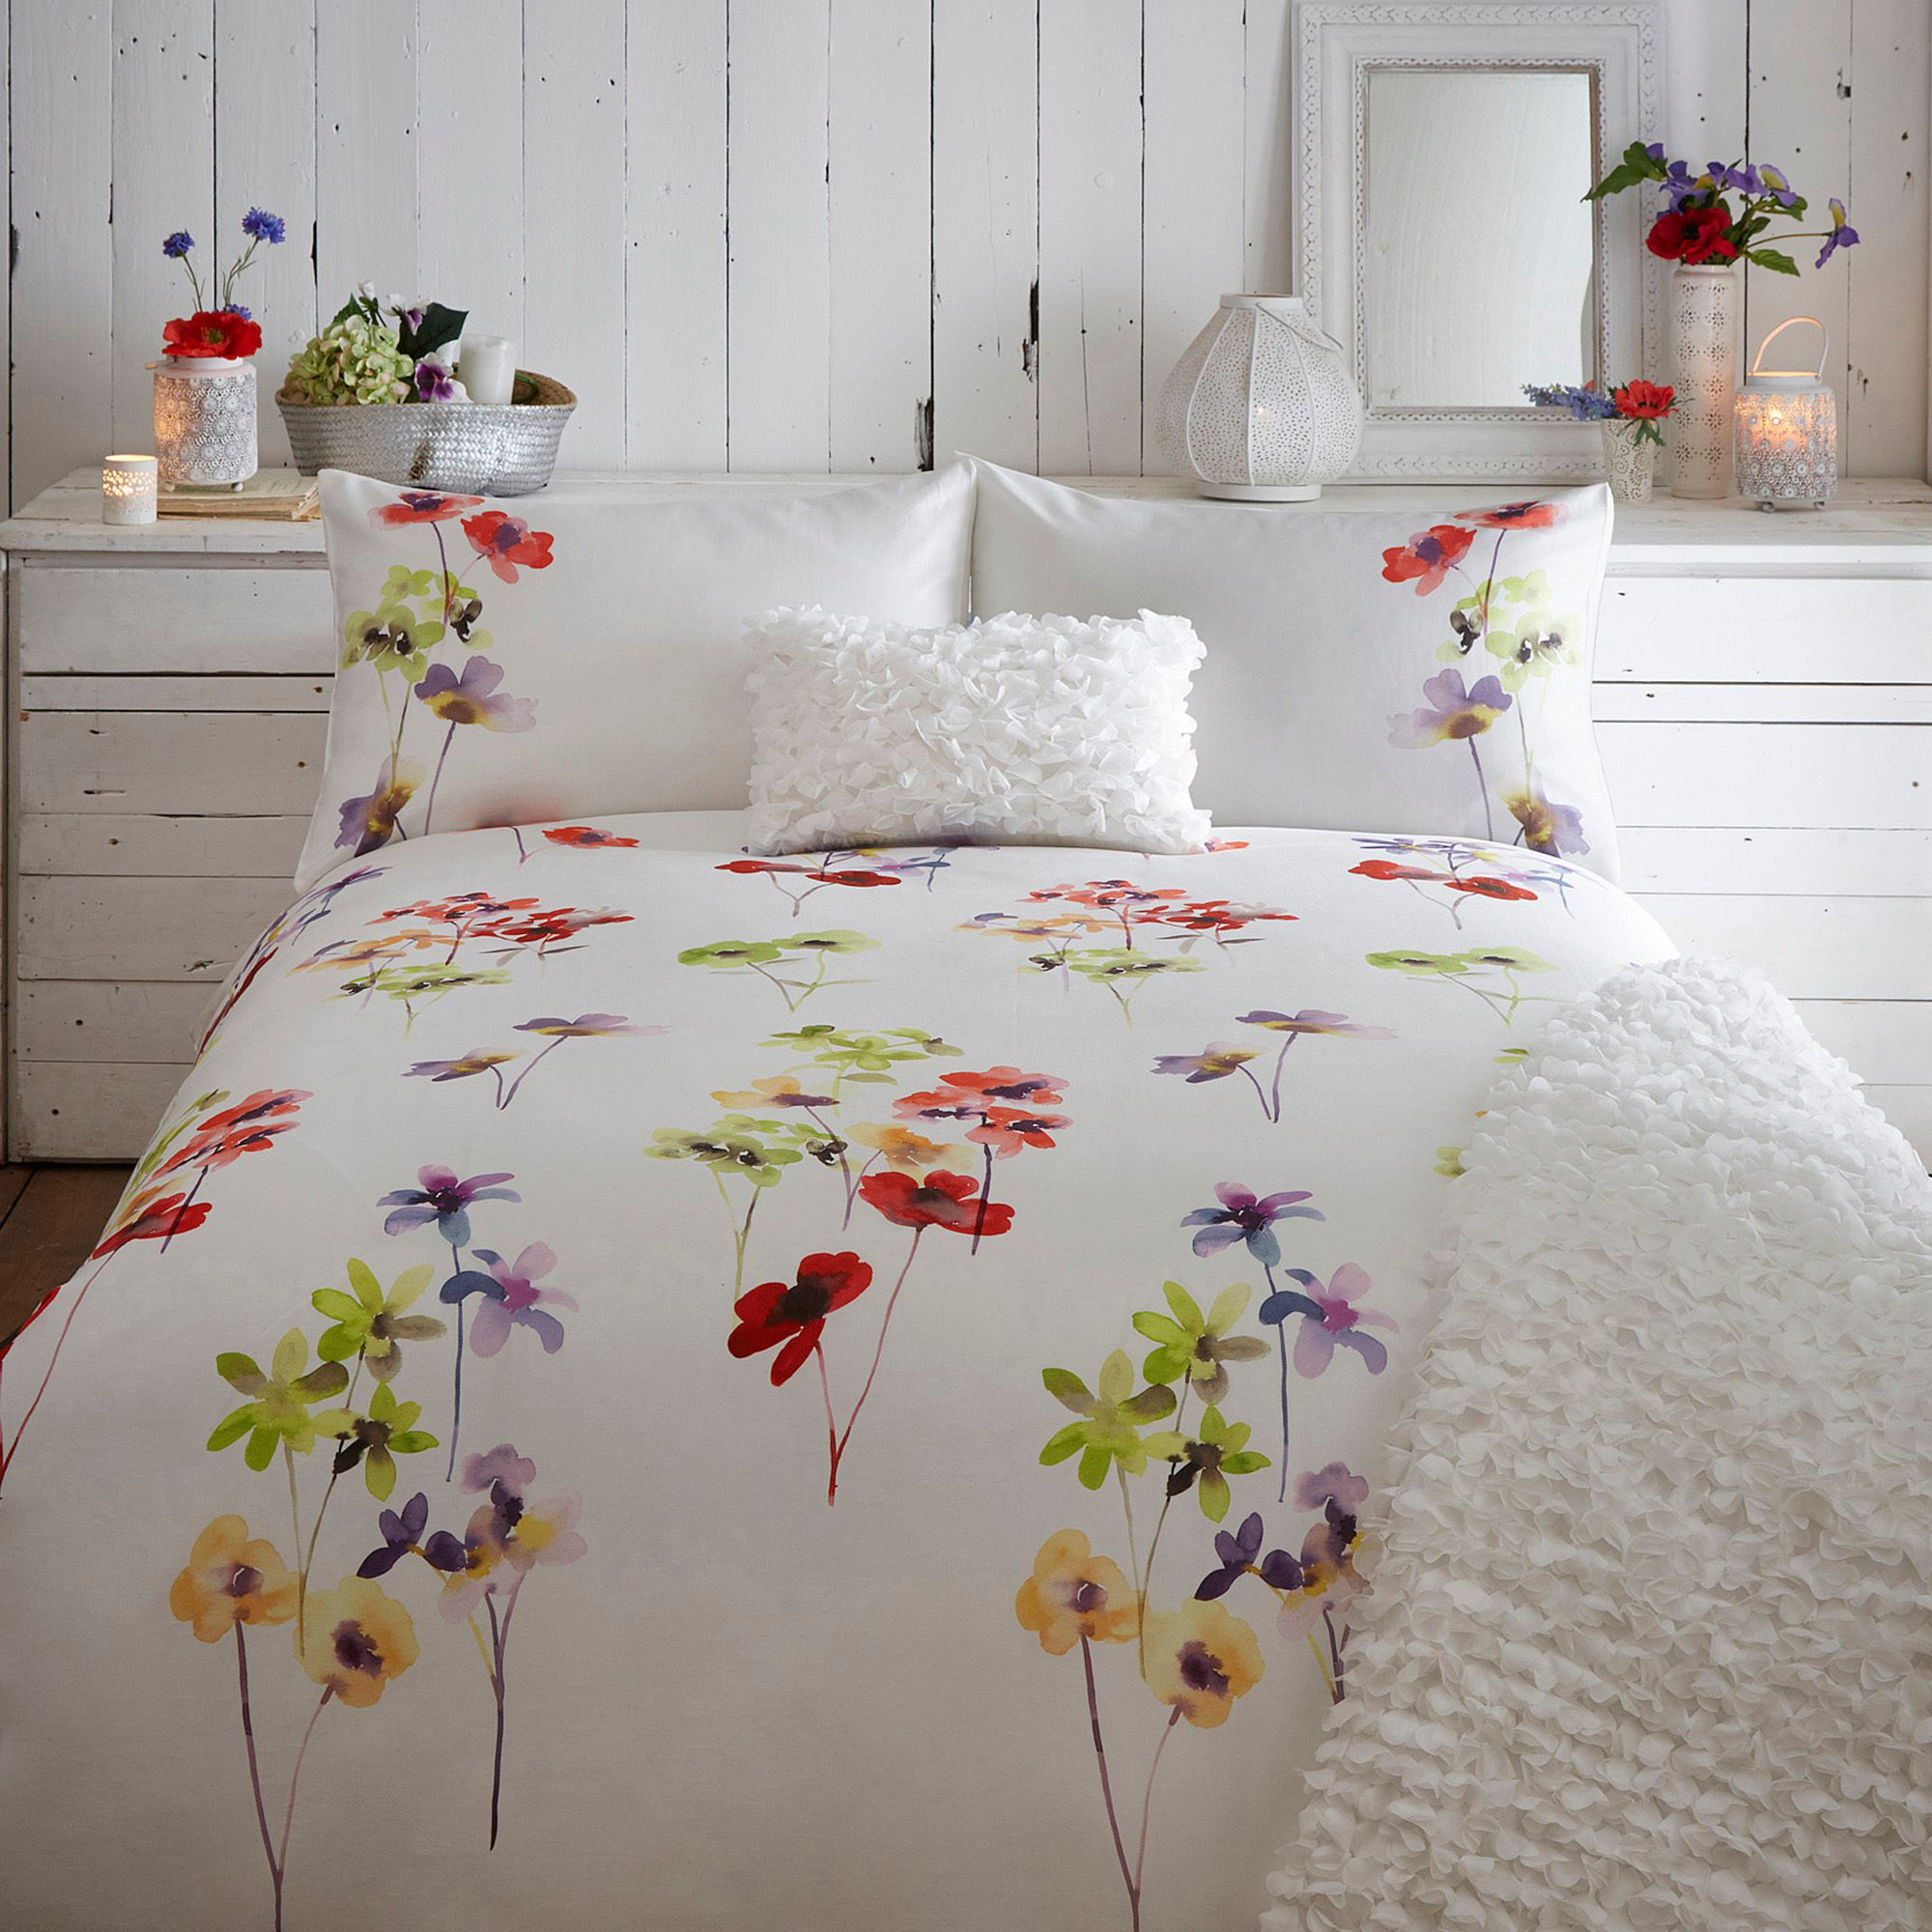 Debenhams duvet covers kingbenhams bed linen duvet covers rjr john rocha cream joy duvet cover from debenhams ebay gumiabroncs Image collections